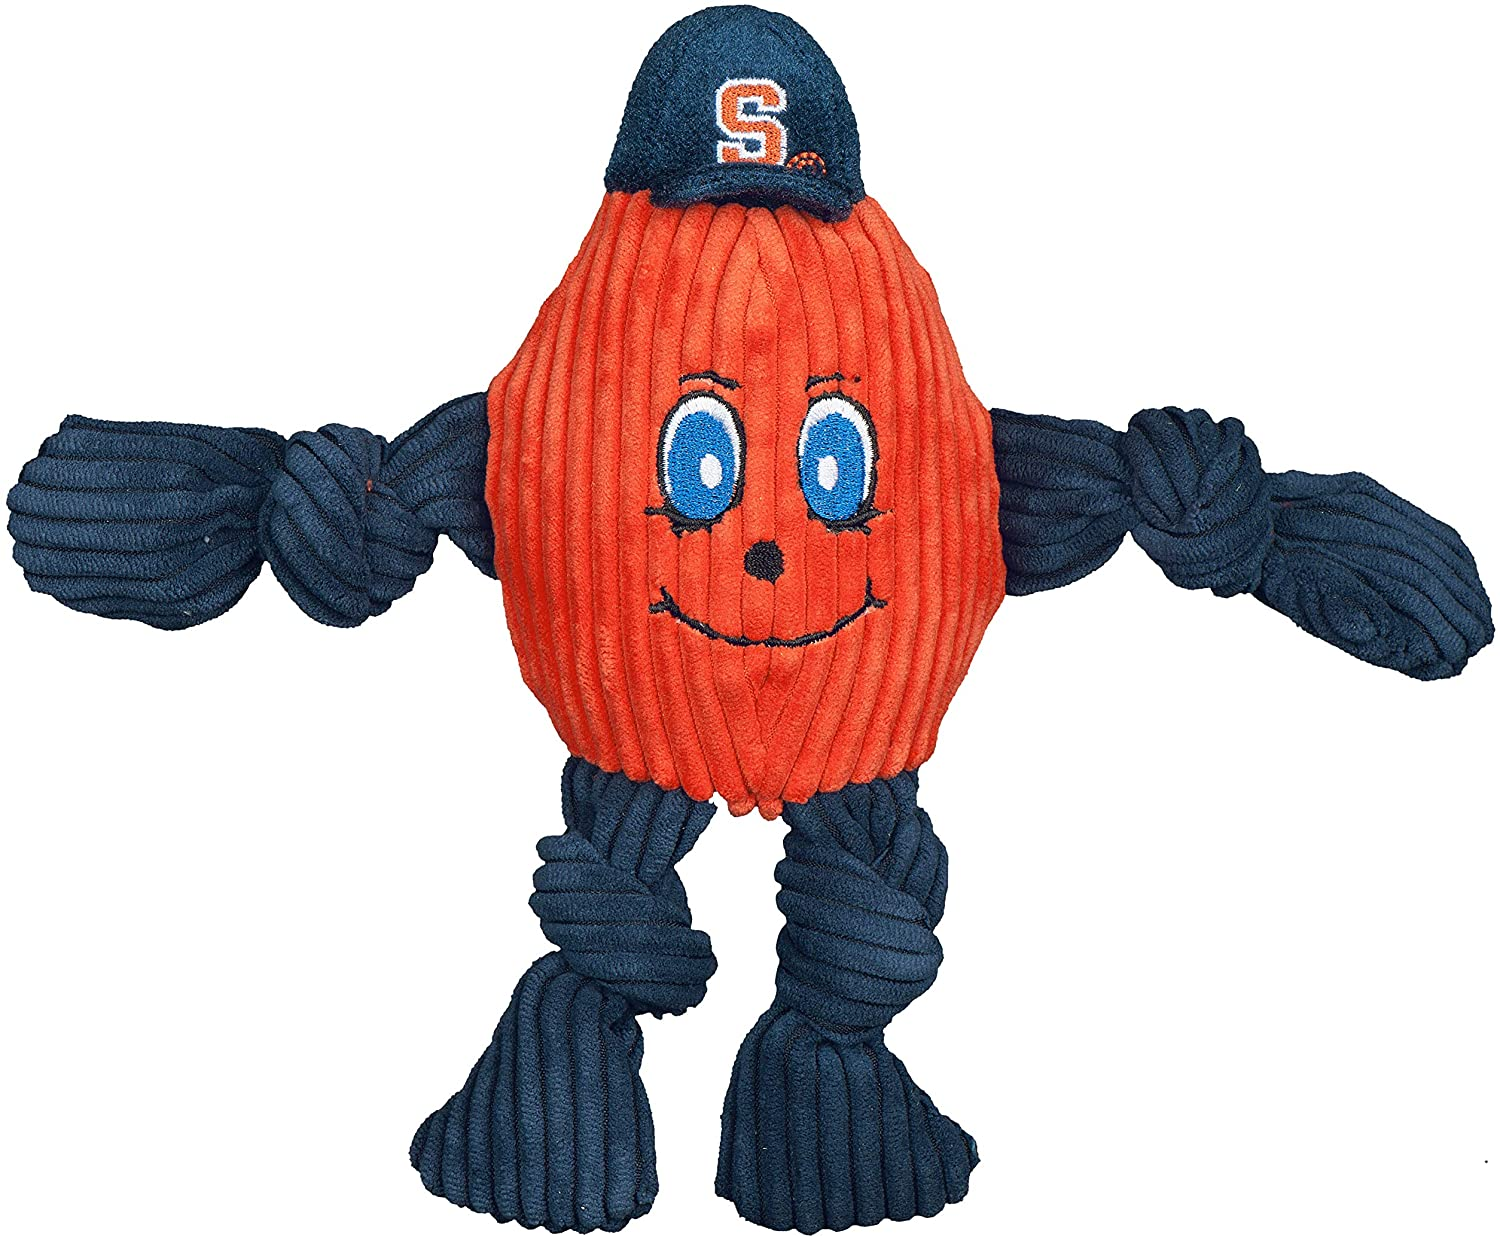 HuggleHounds Officially Licensed College Mascot Plush Corduroy Durable Squeaky Knottie, Great Dog Toys for Aggressive Chewers